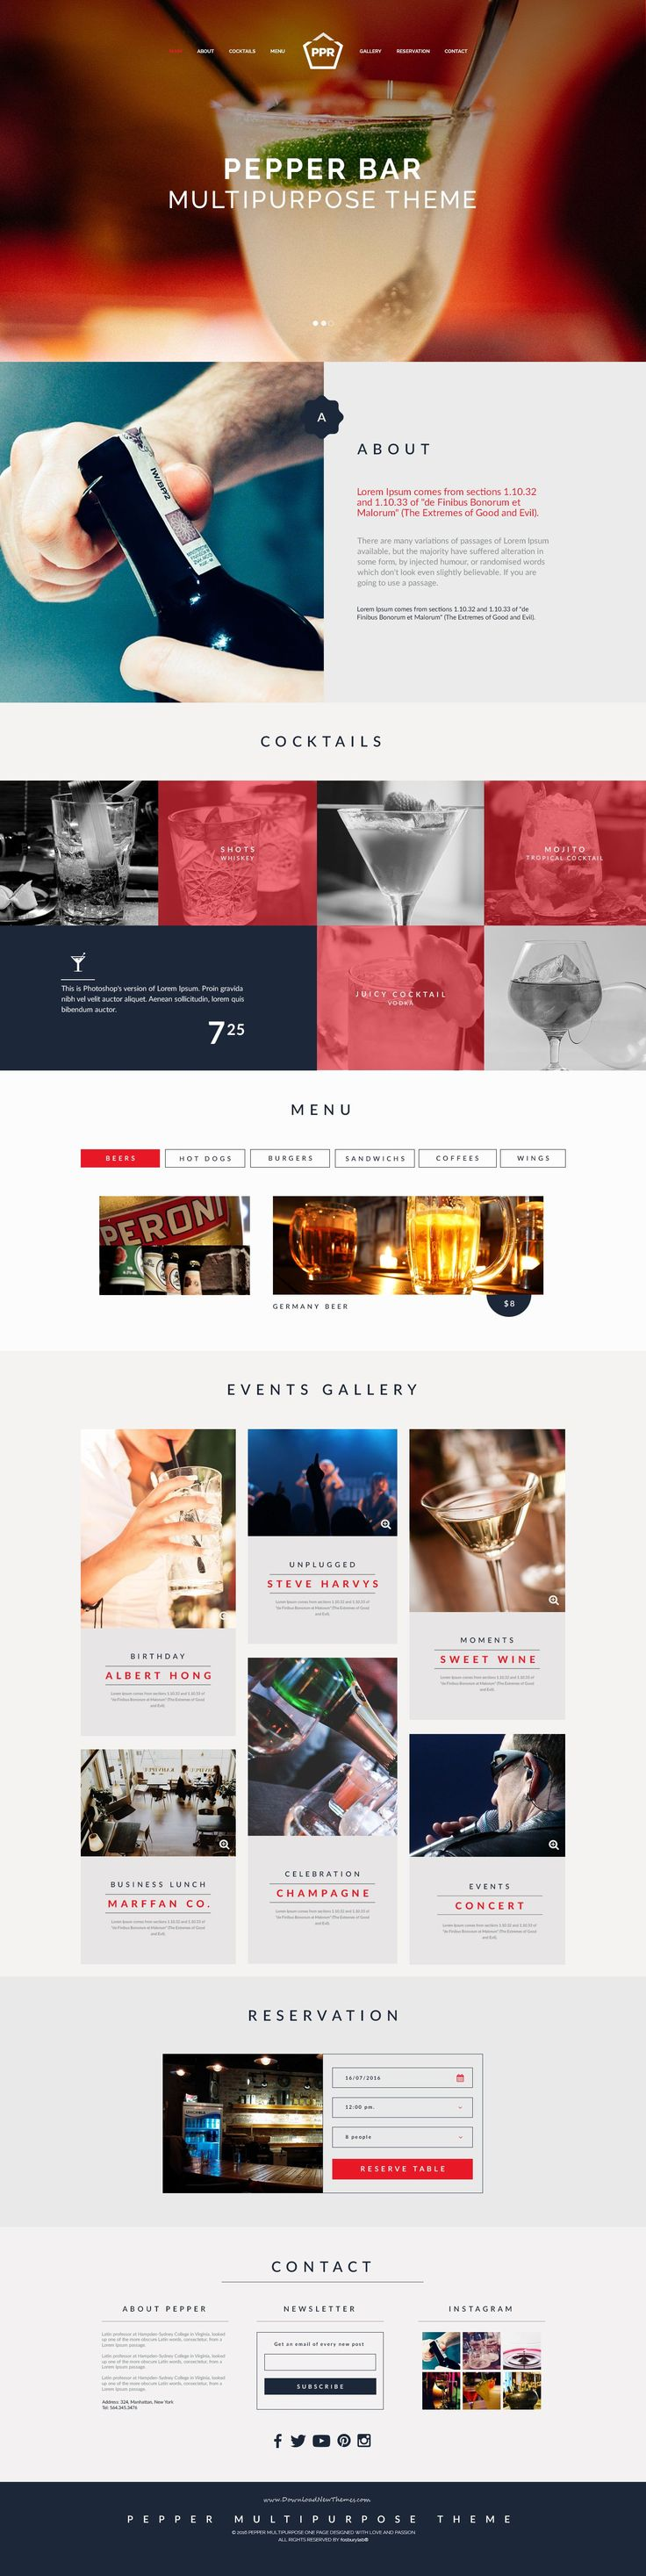 Multipurpose Pepper is an elegant and unique PSD Template design for restaurants, bars and cafes website. #pubs #bars #beer #wine #shop